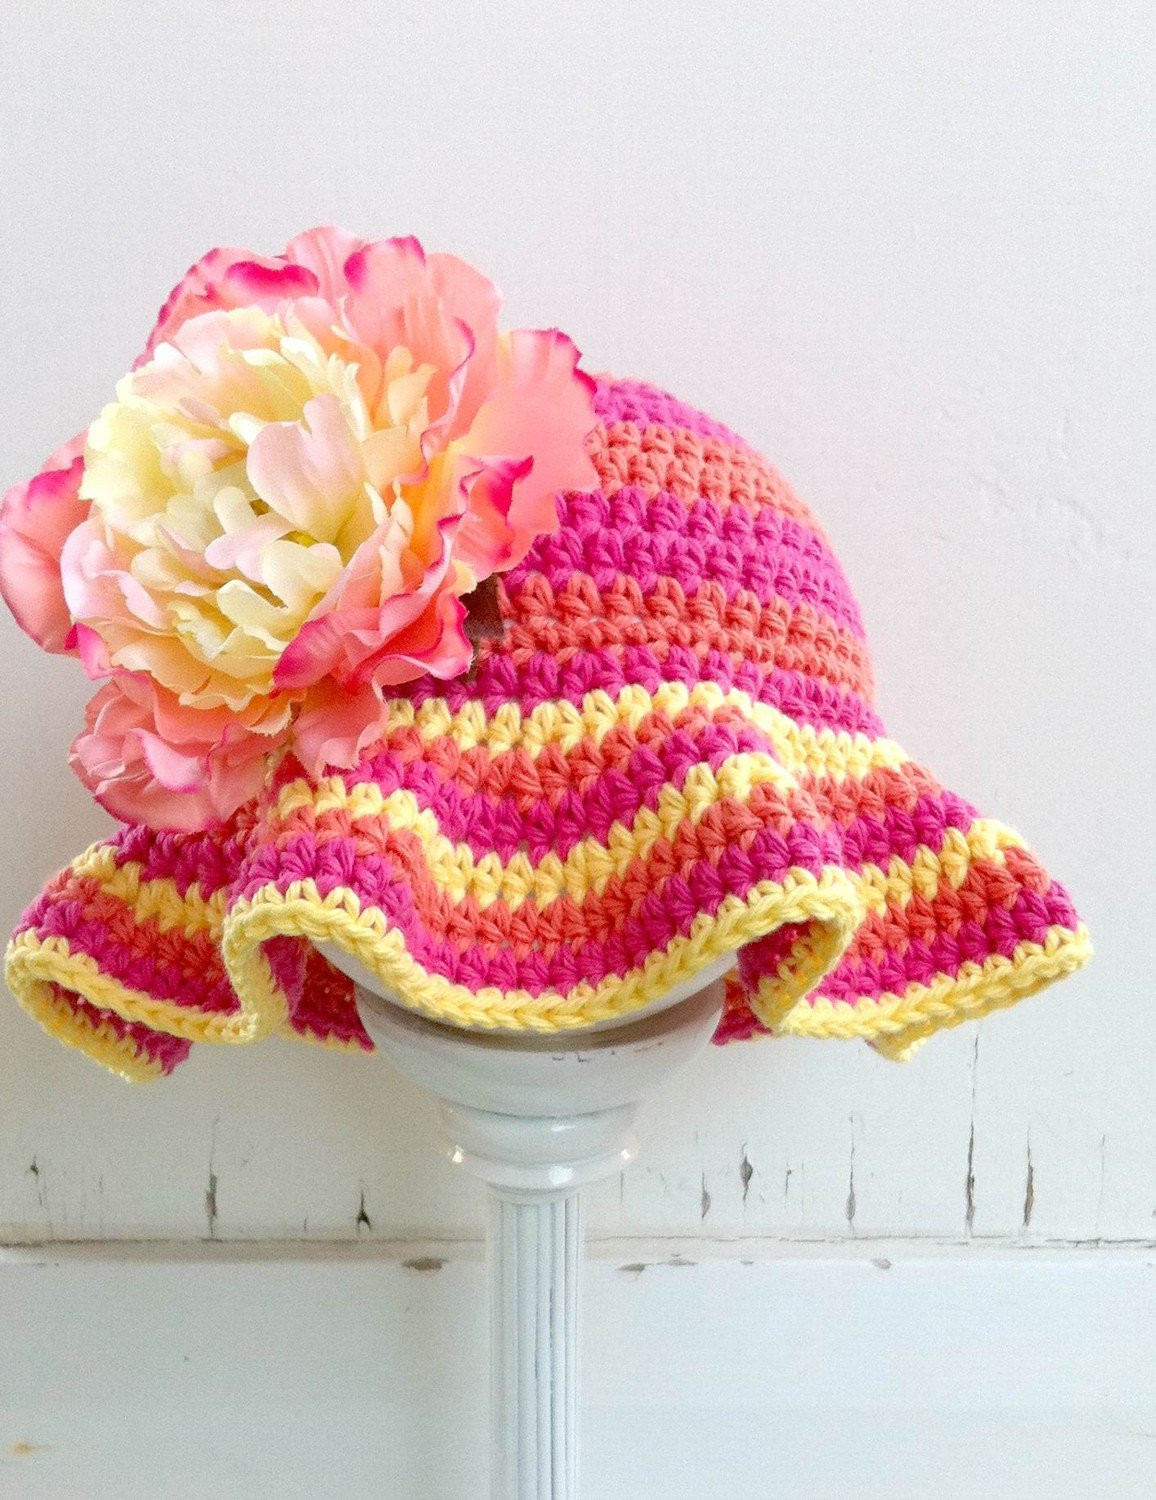 Elegant Tutti Frutti Floppy Crochet Sun Hat Pattern Crochet Crochet Sun Hat Pattern Of Superb 48 Ideas Crochet Sun Hat Pattern